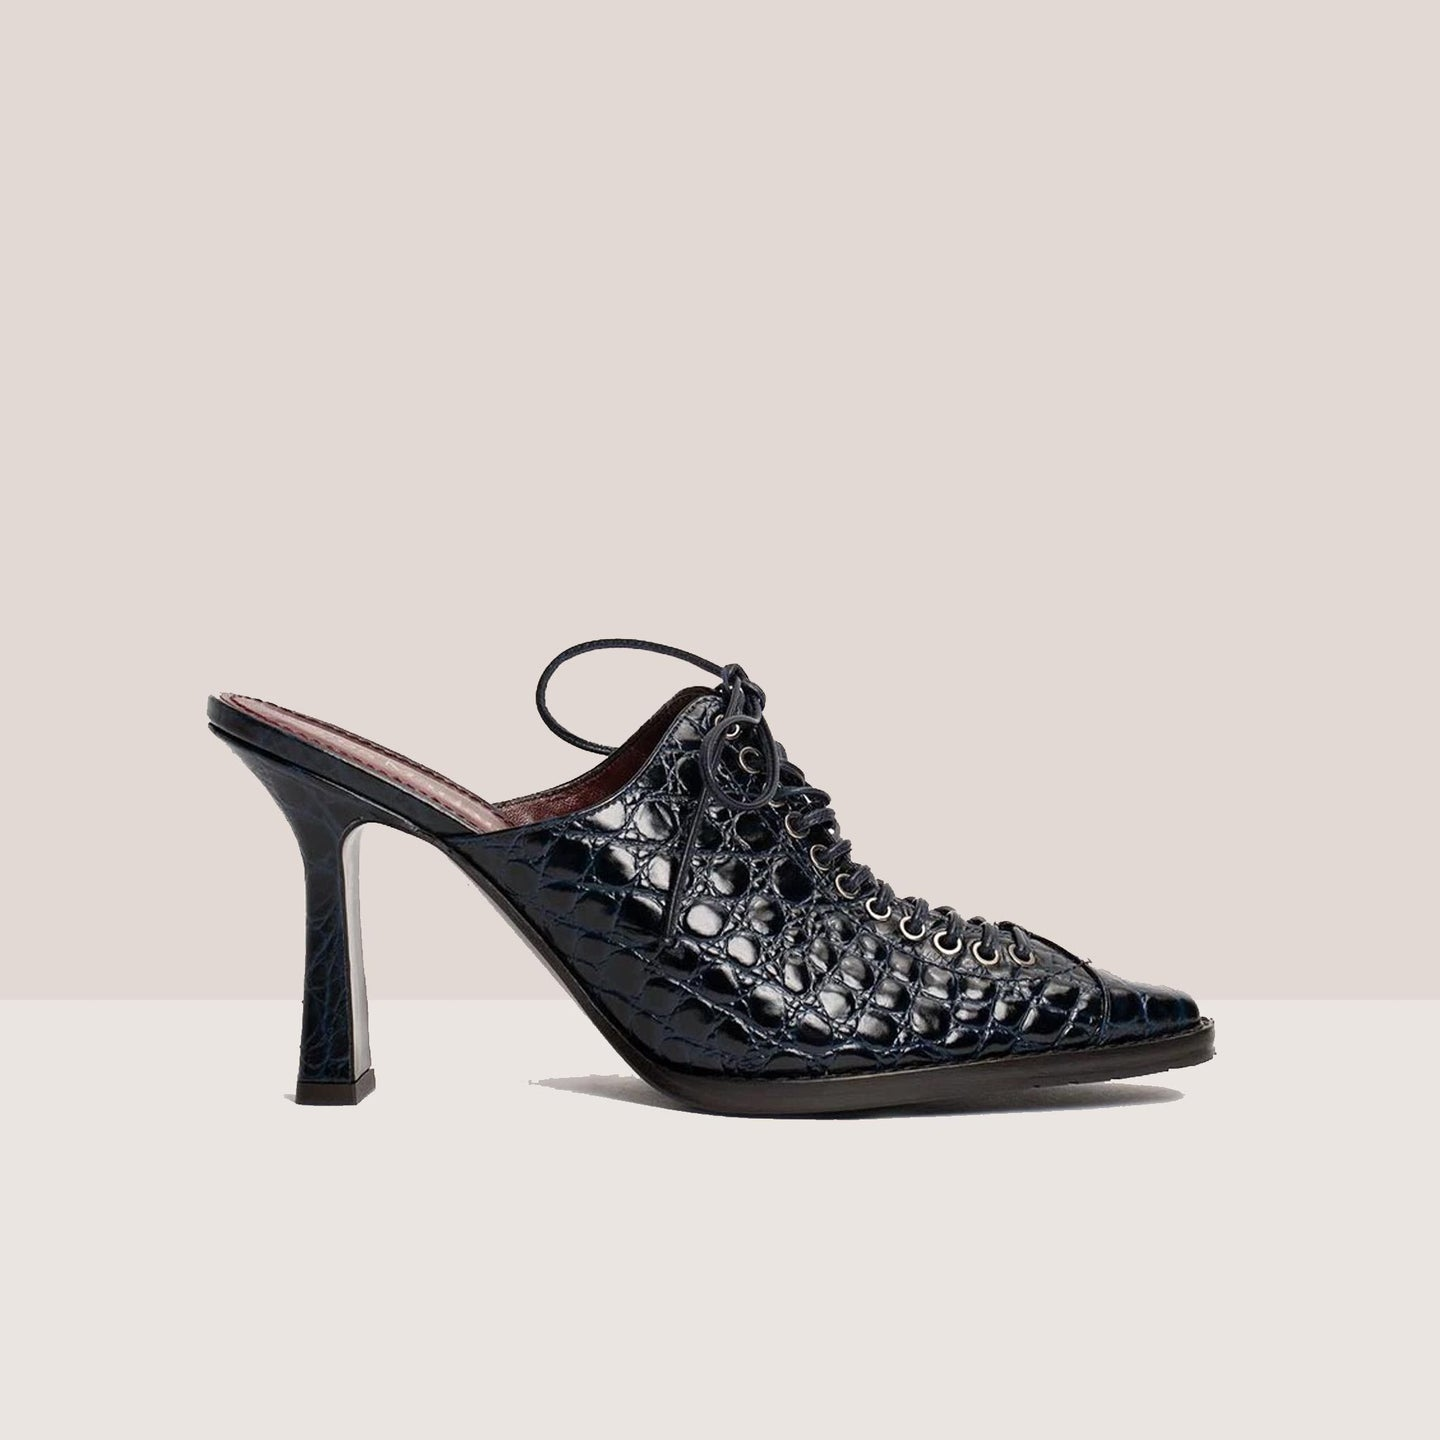 Sies Marjan - Stella Mule, side view, available at LCD.